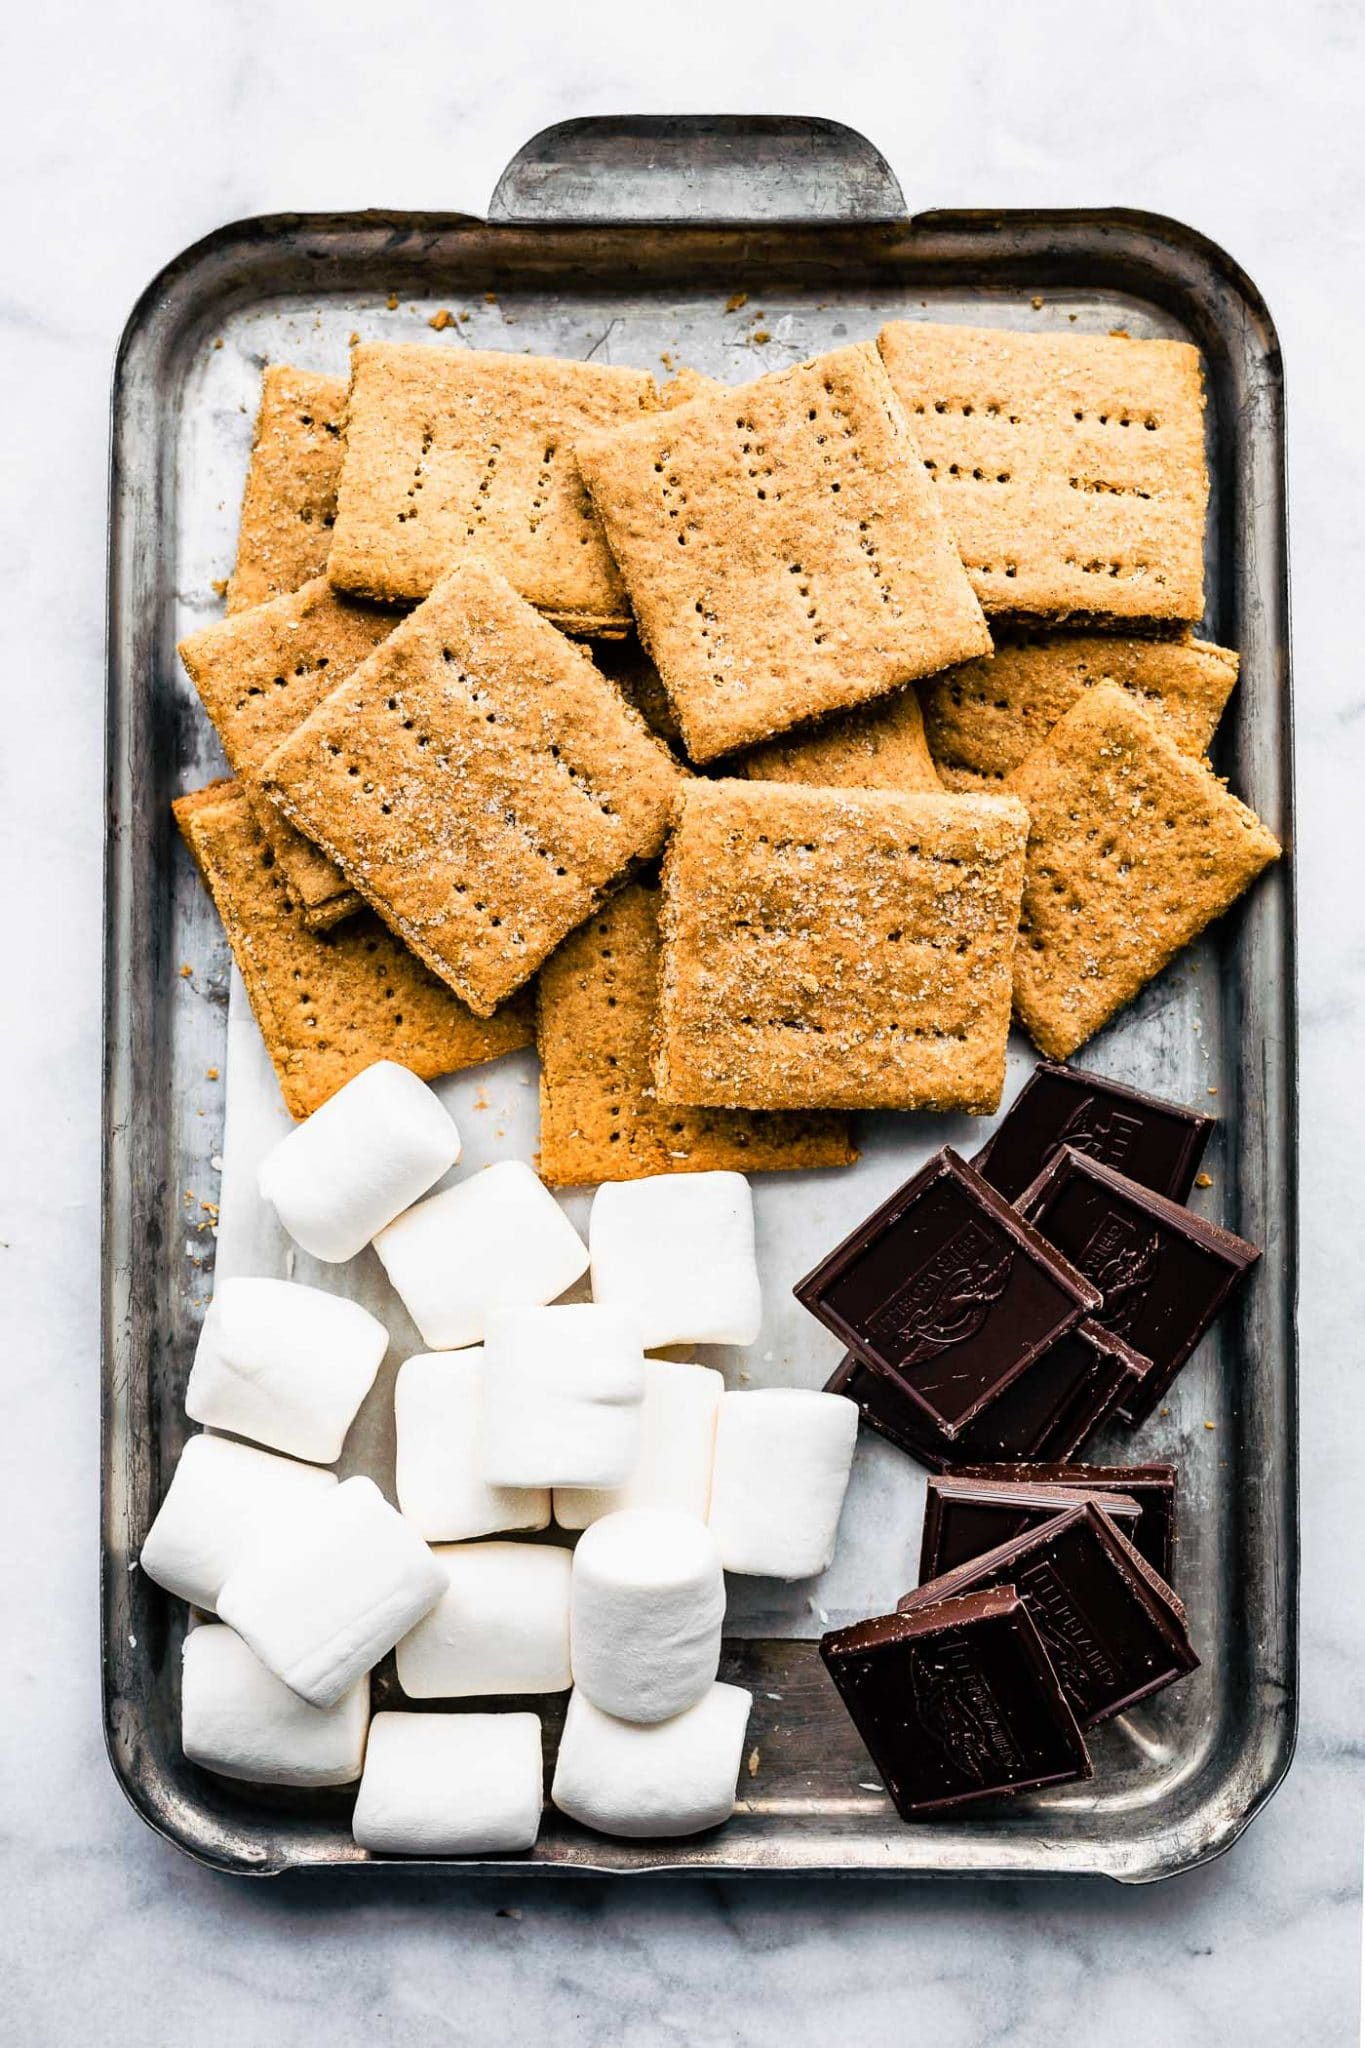 Overhead image of sheet pan with homemade graham crackers, dark chocolate, and vegan marshmallows in piles.